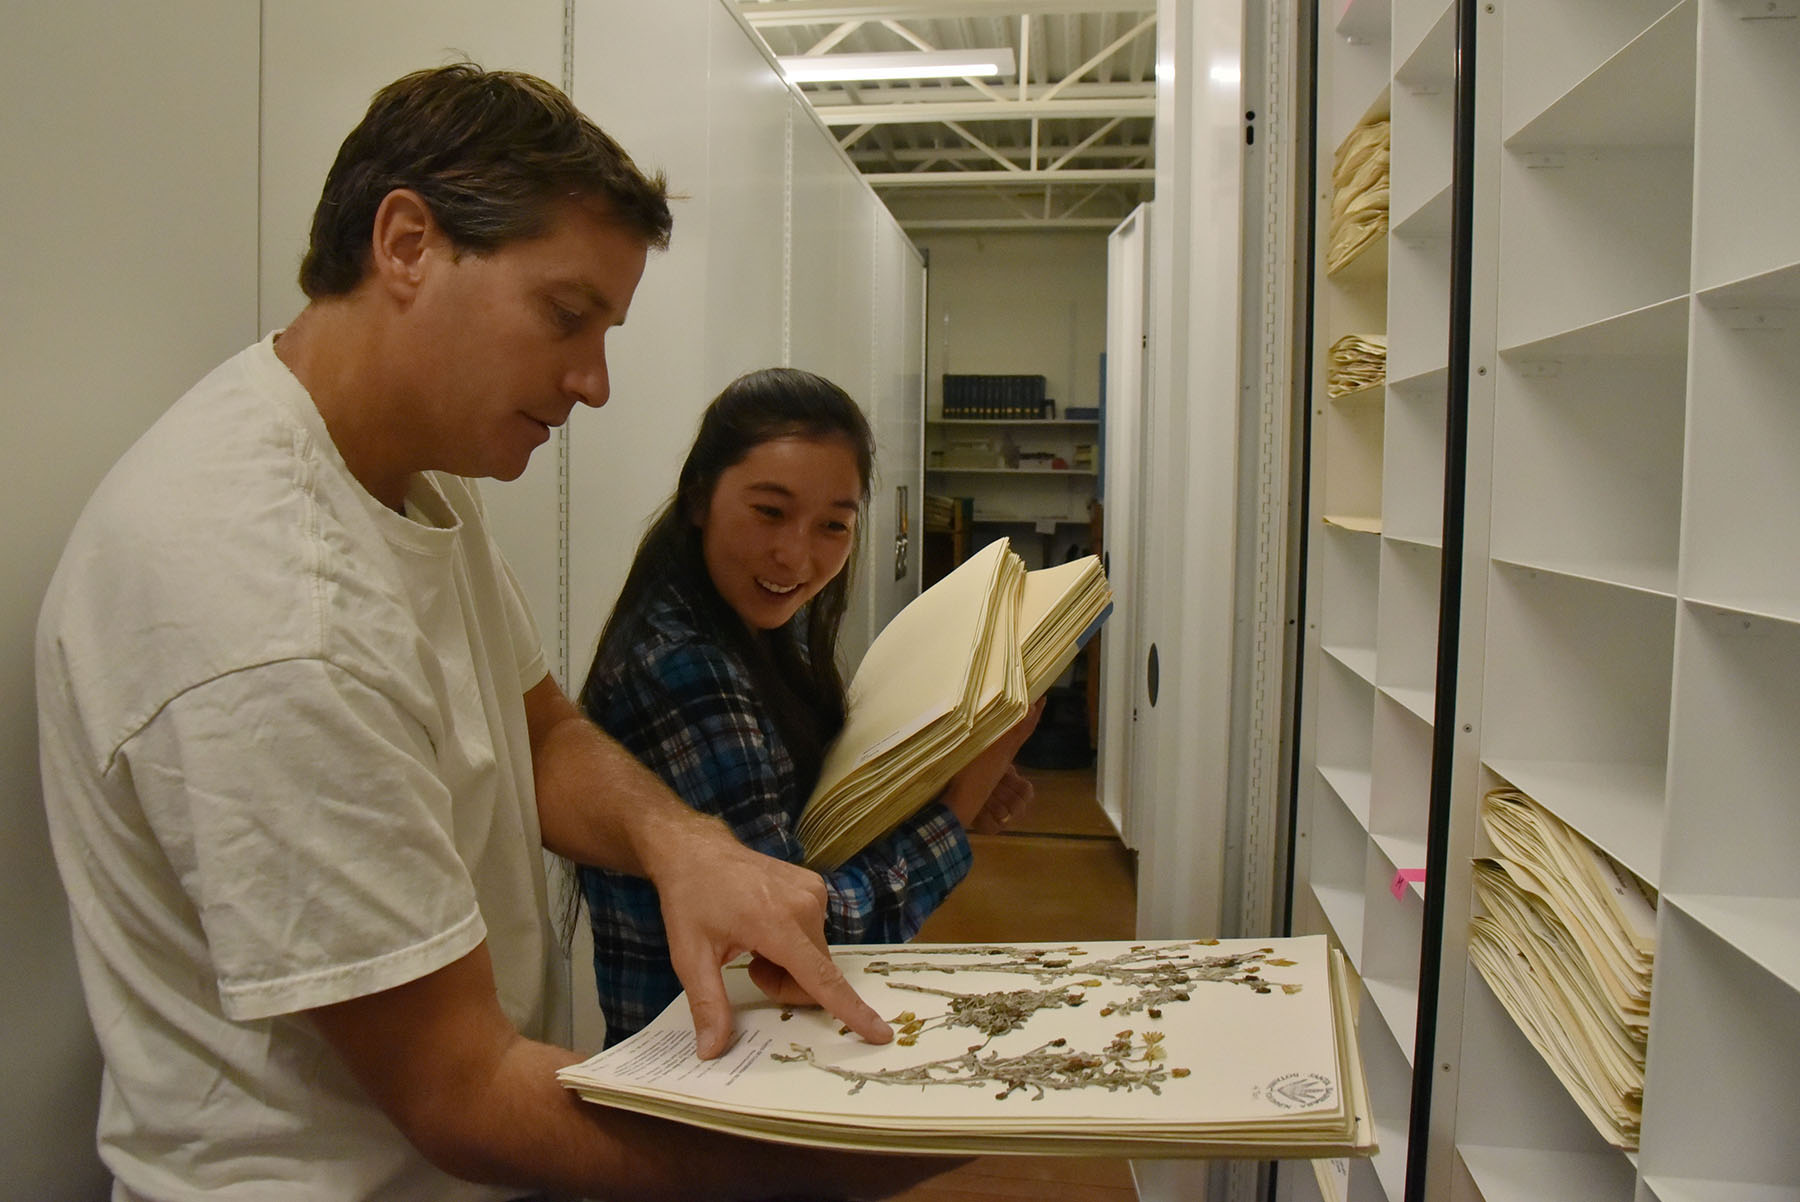 Matthew Kay, a botany instructor at City College, shows Kara Kang, botany major, a plant specimen from the 100 thousand they were filing on Thursday, Sept. 8, at the Santa Barbara Botanical Gardens. Several City College students helped transfer the garden's entire herbarium collection to the new Pritzlaff Conservation Center.